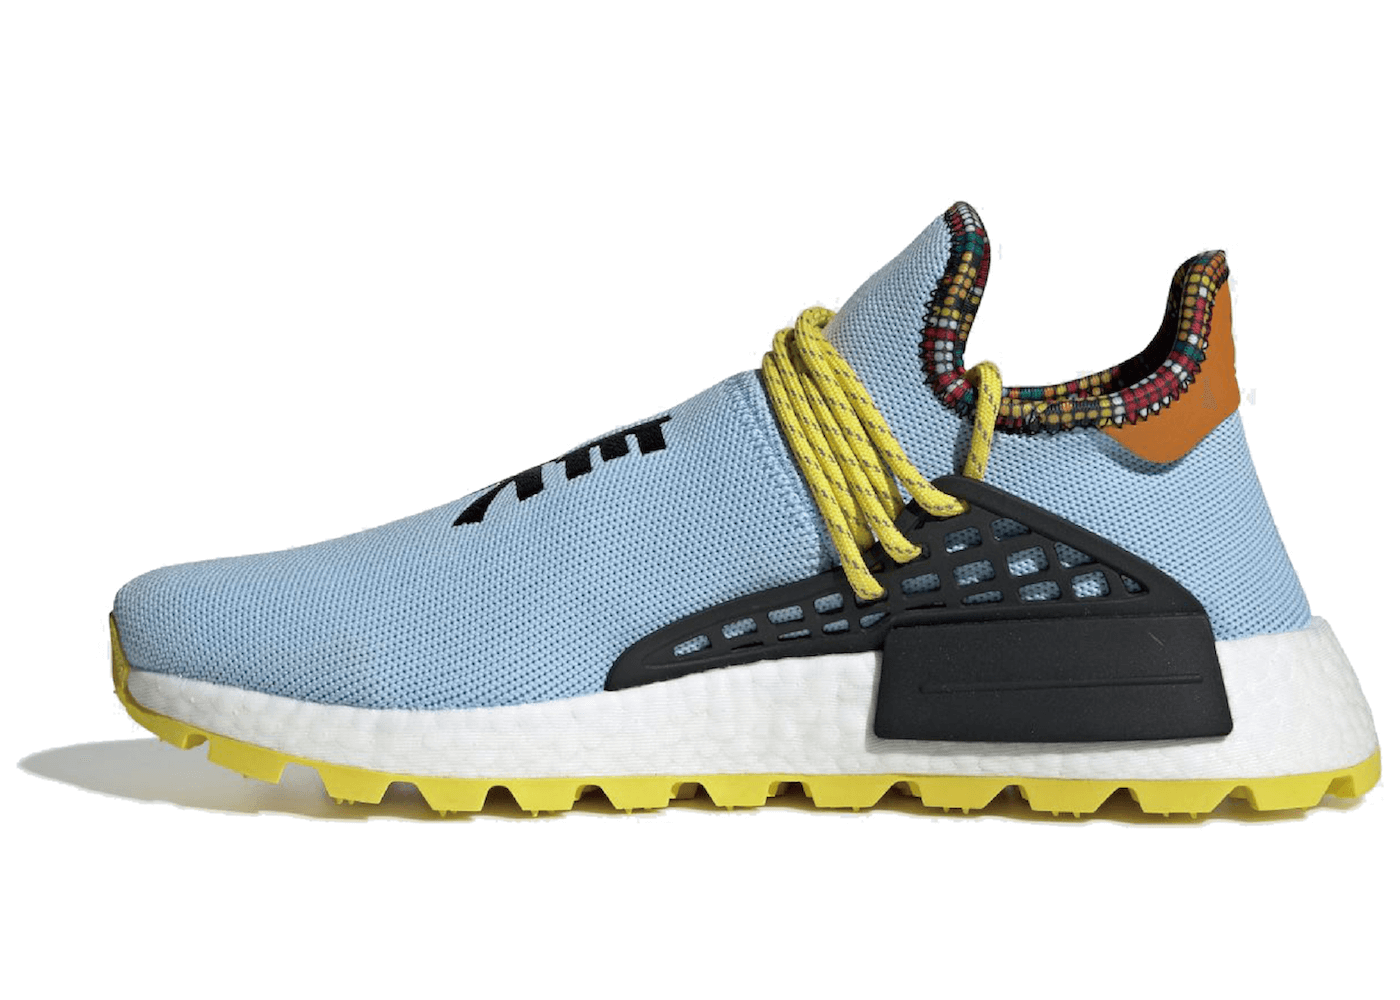 Adidas NMD Hu Pharrell Inspiration Pack Clear Skyの写真